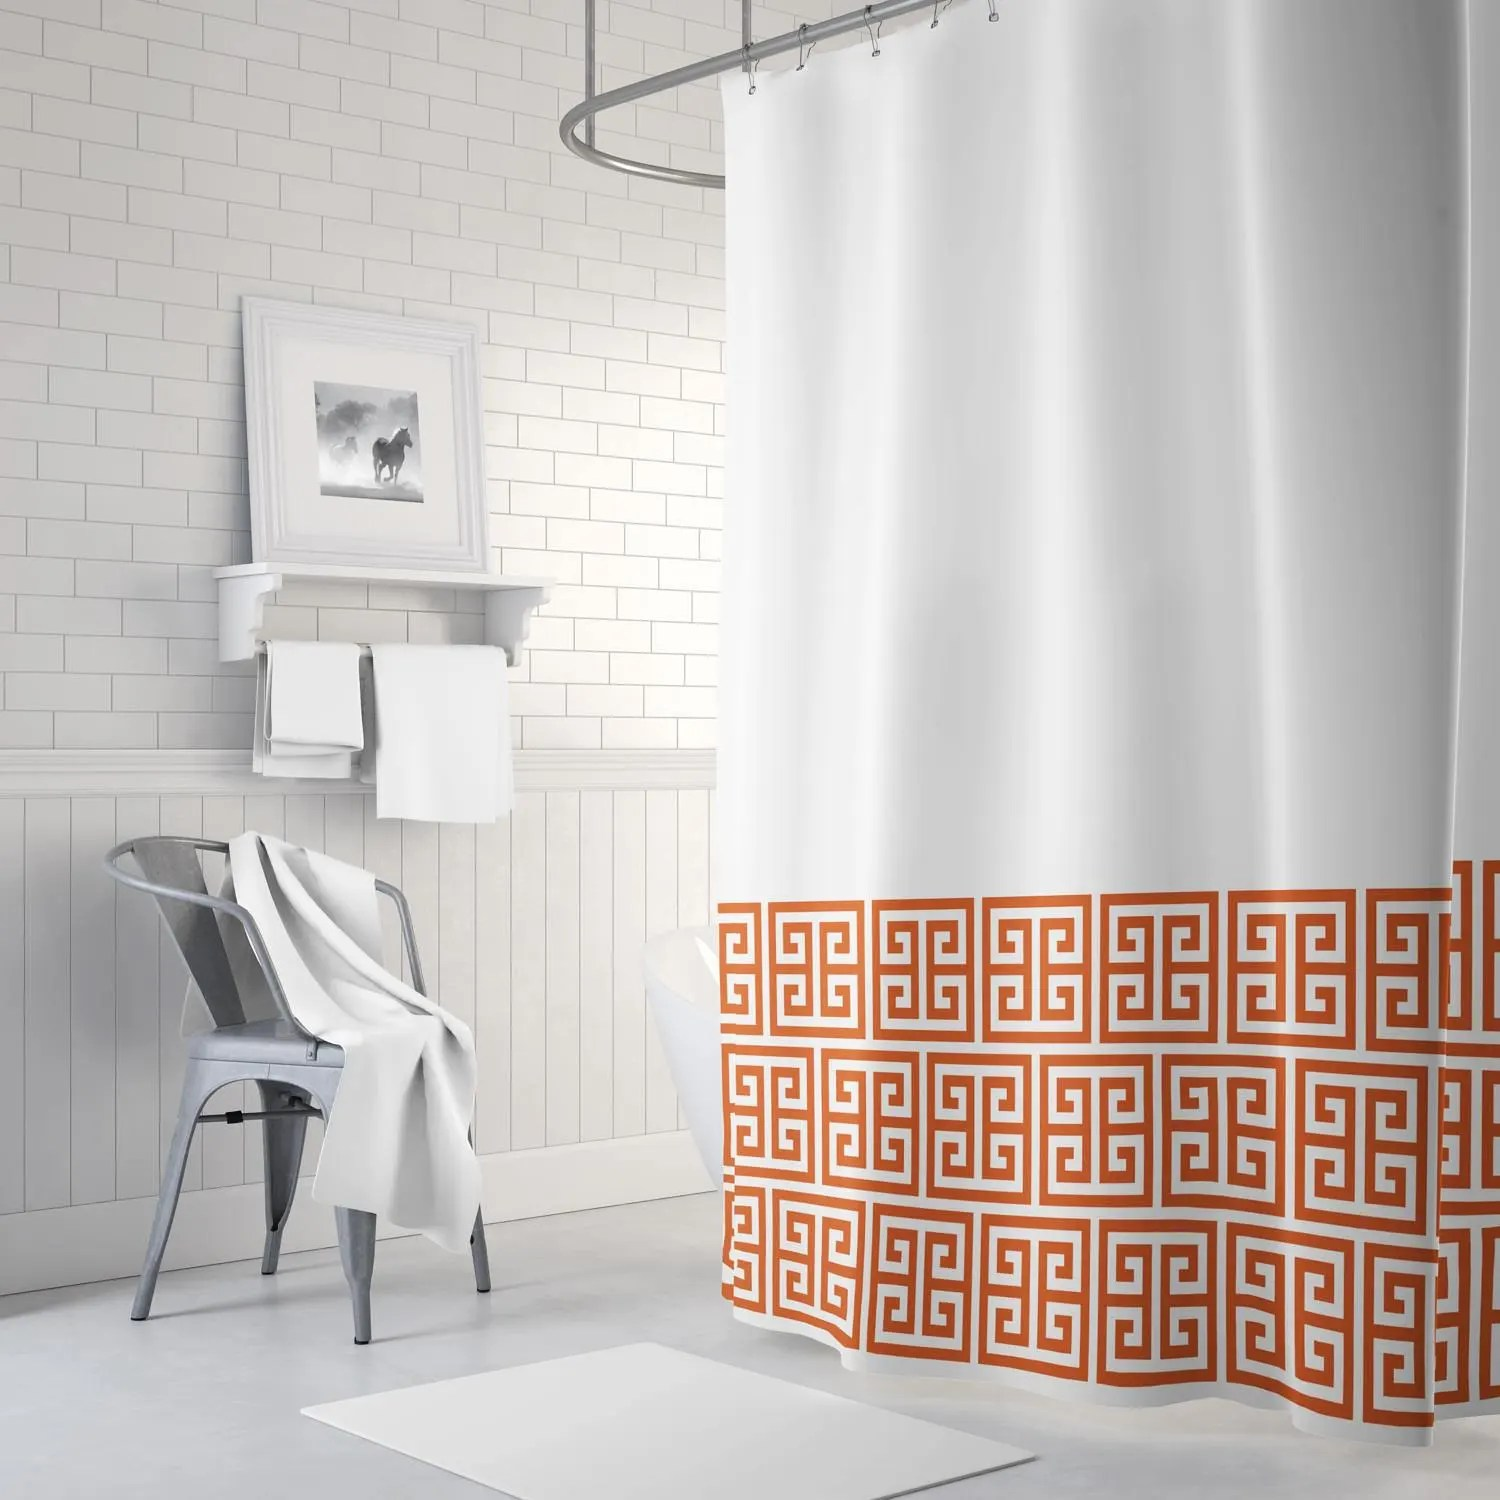 greek key shower curtain burnt orange and white or any colors standard extra long sizes custom home decor preppy bathroom